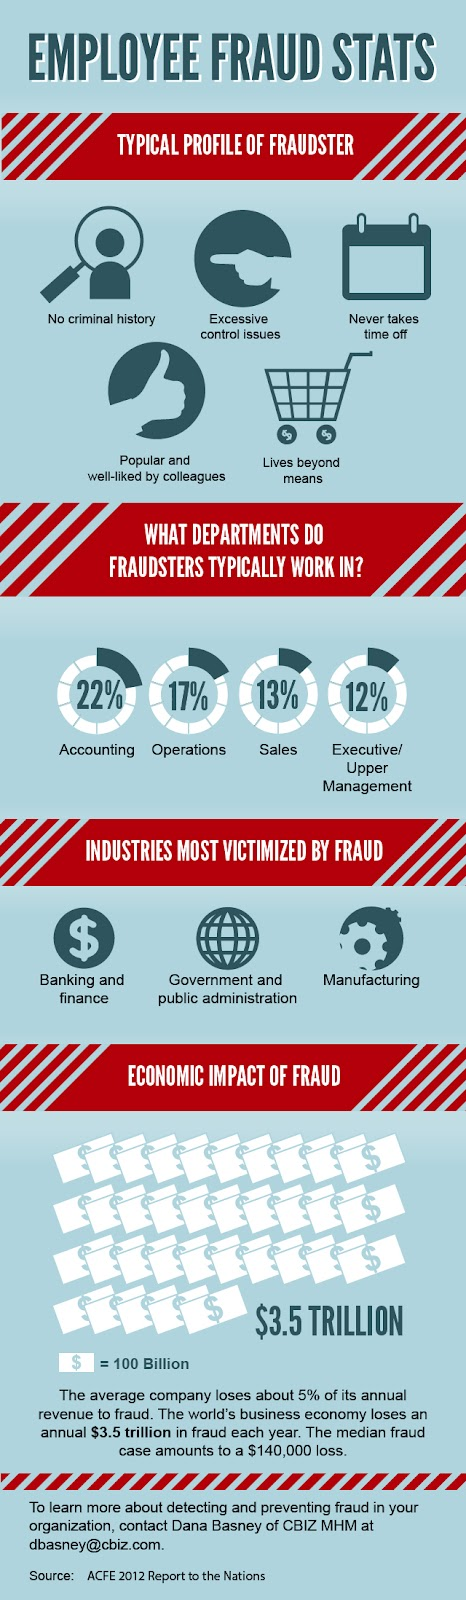 the myths and misconceptions regarding employee theft in todays management Industrial espionage prevention taken lightly and is very much a factor in today's high-stakes common myths and misconceptions about.